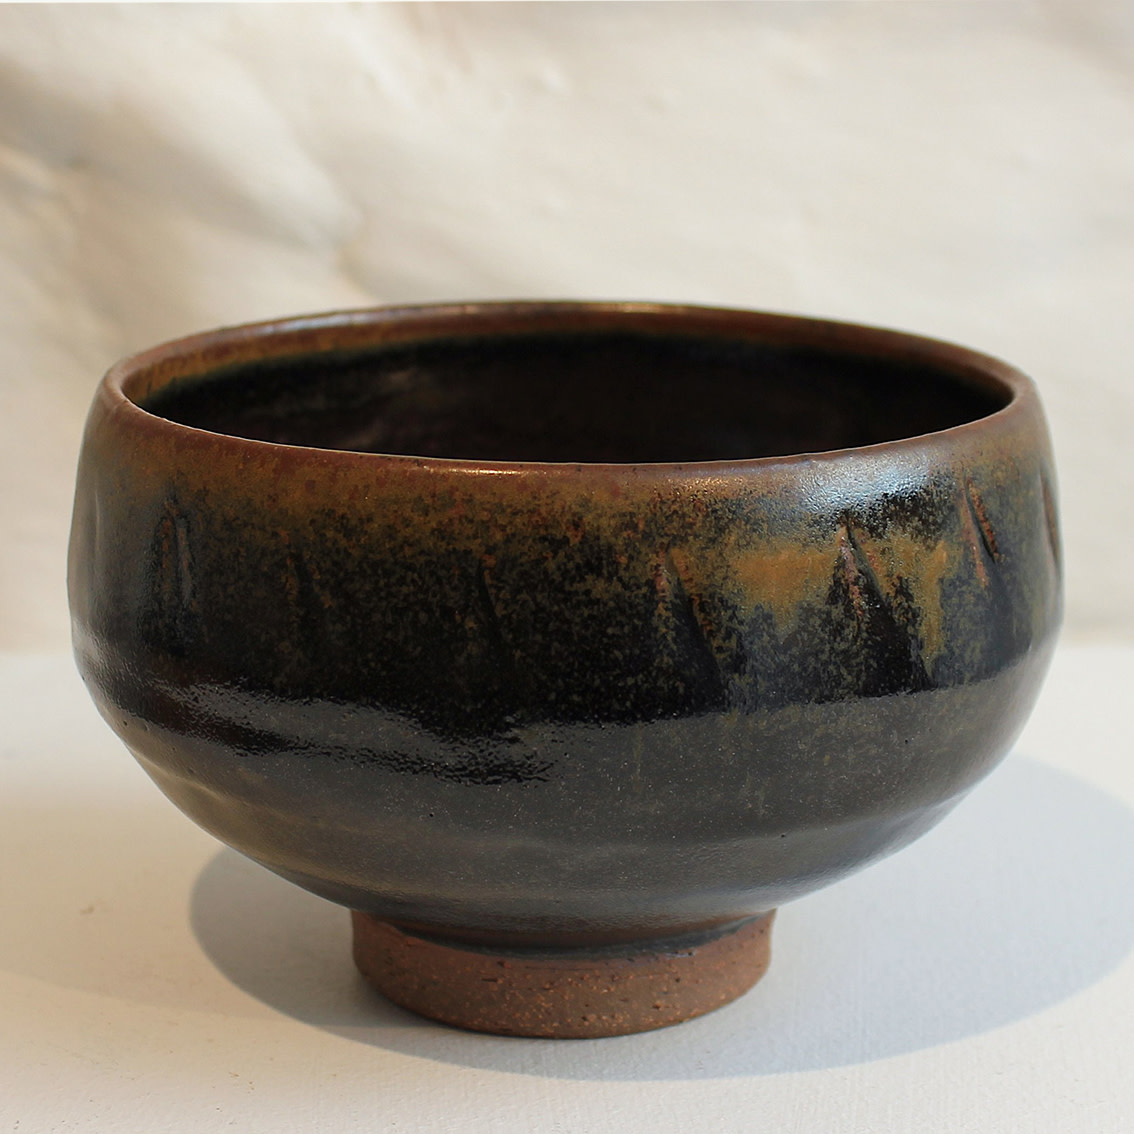 "<span class=""link fancybox-details-link""><a href=""/artists/200-matthew-tyas/works/5453-matthew-tyas-tenmoku-ash-chawan-bowl-2018/"">View Detail Page</a></span><div class=""artist""><strong>Matthew Tyas</strong></div> <div class=""title""><em>Tenmoku Ash Chawan Bowl</em>, 2018</div> <div class=""signed_and_dated"">stamped by the artist</div> <div class=""medium"">glazed thrown stoneware</div><div class=""price"">£75.00</div><div class=""copyright_line"">Copyright The Artist</div>"